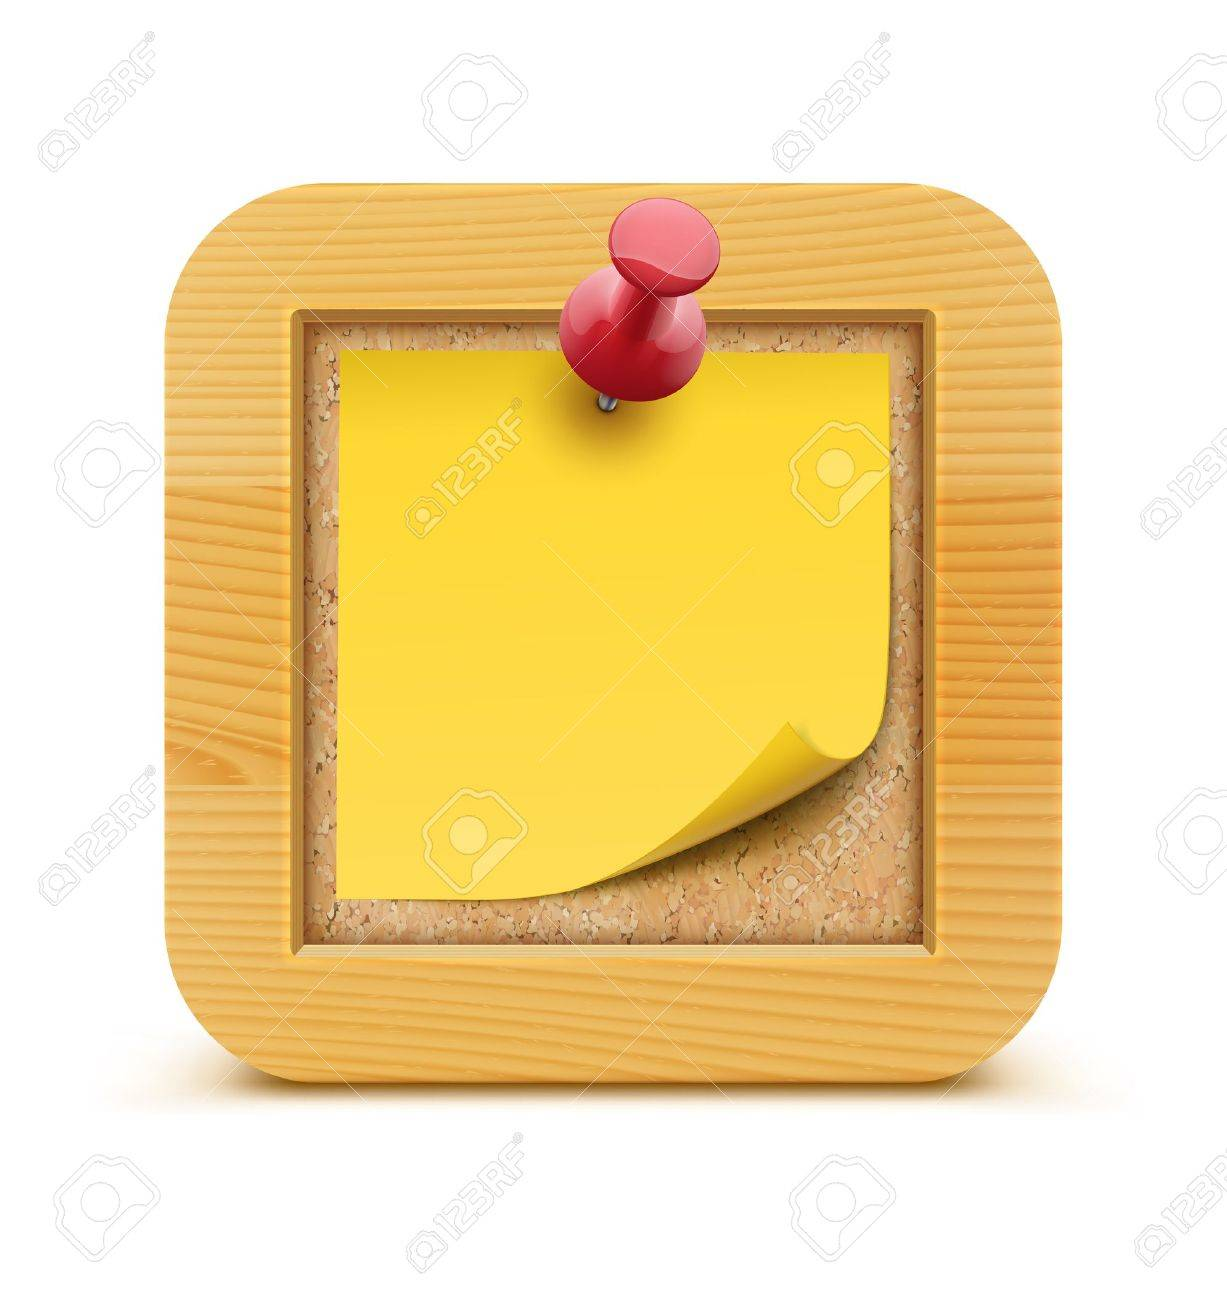 Vector illustration of post it note in on the cork bulletin board with wood frame - 17012480